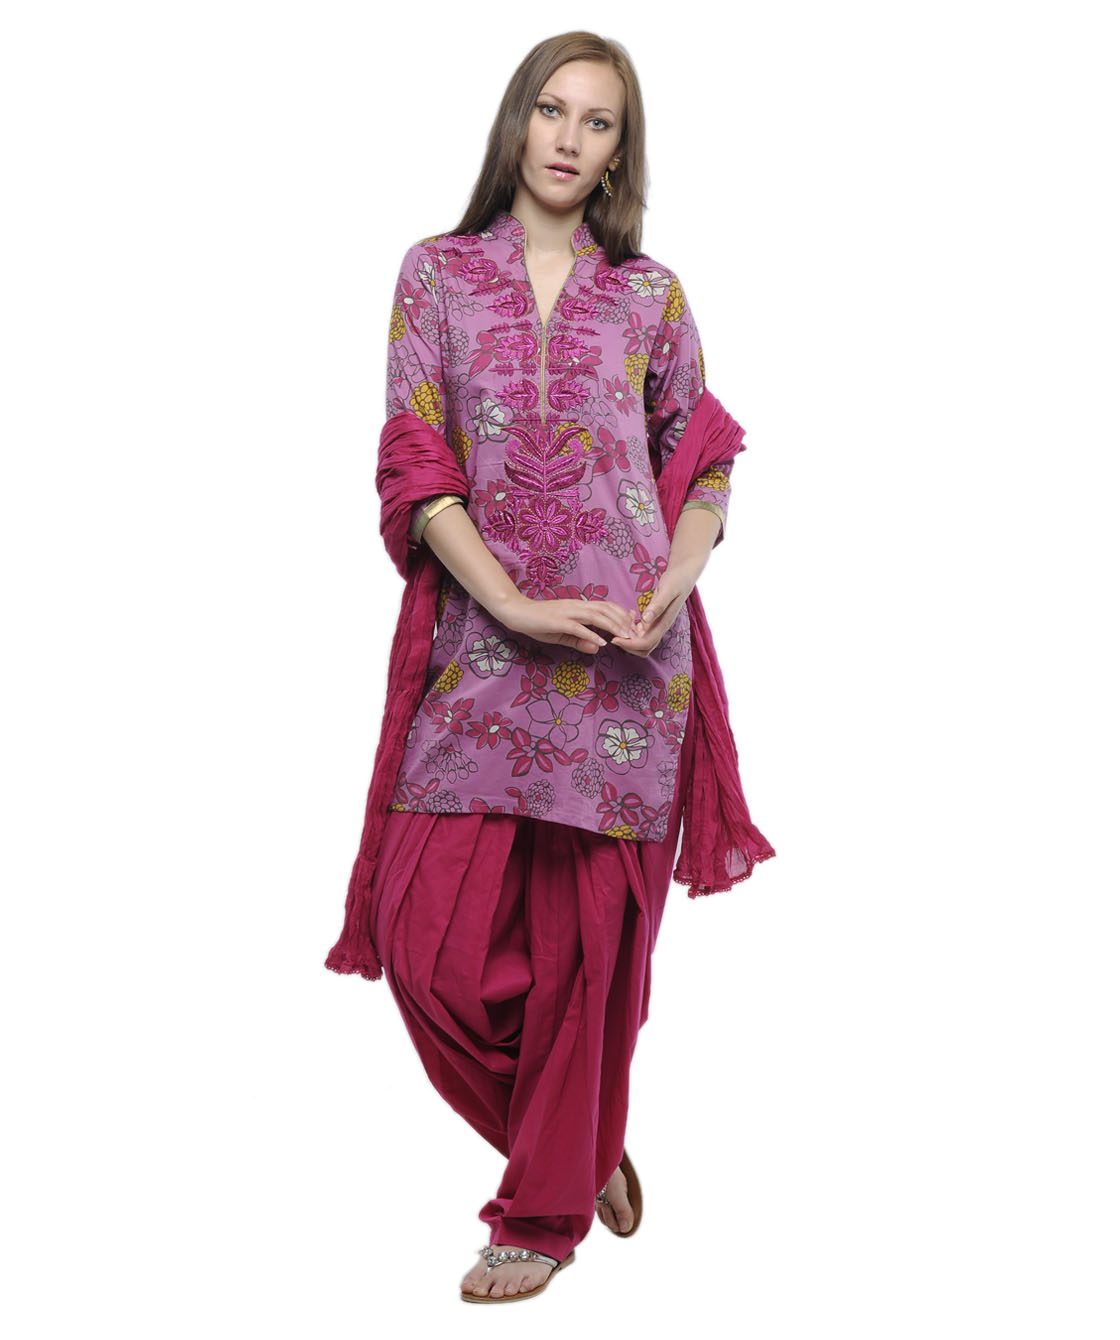 Fashion 2013 clothing9 latest clothes fashion online pakistani